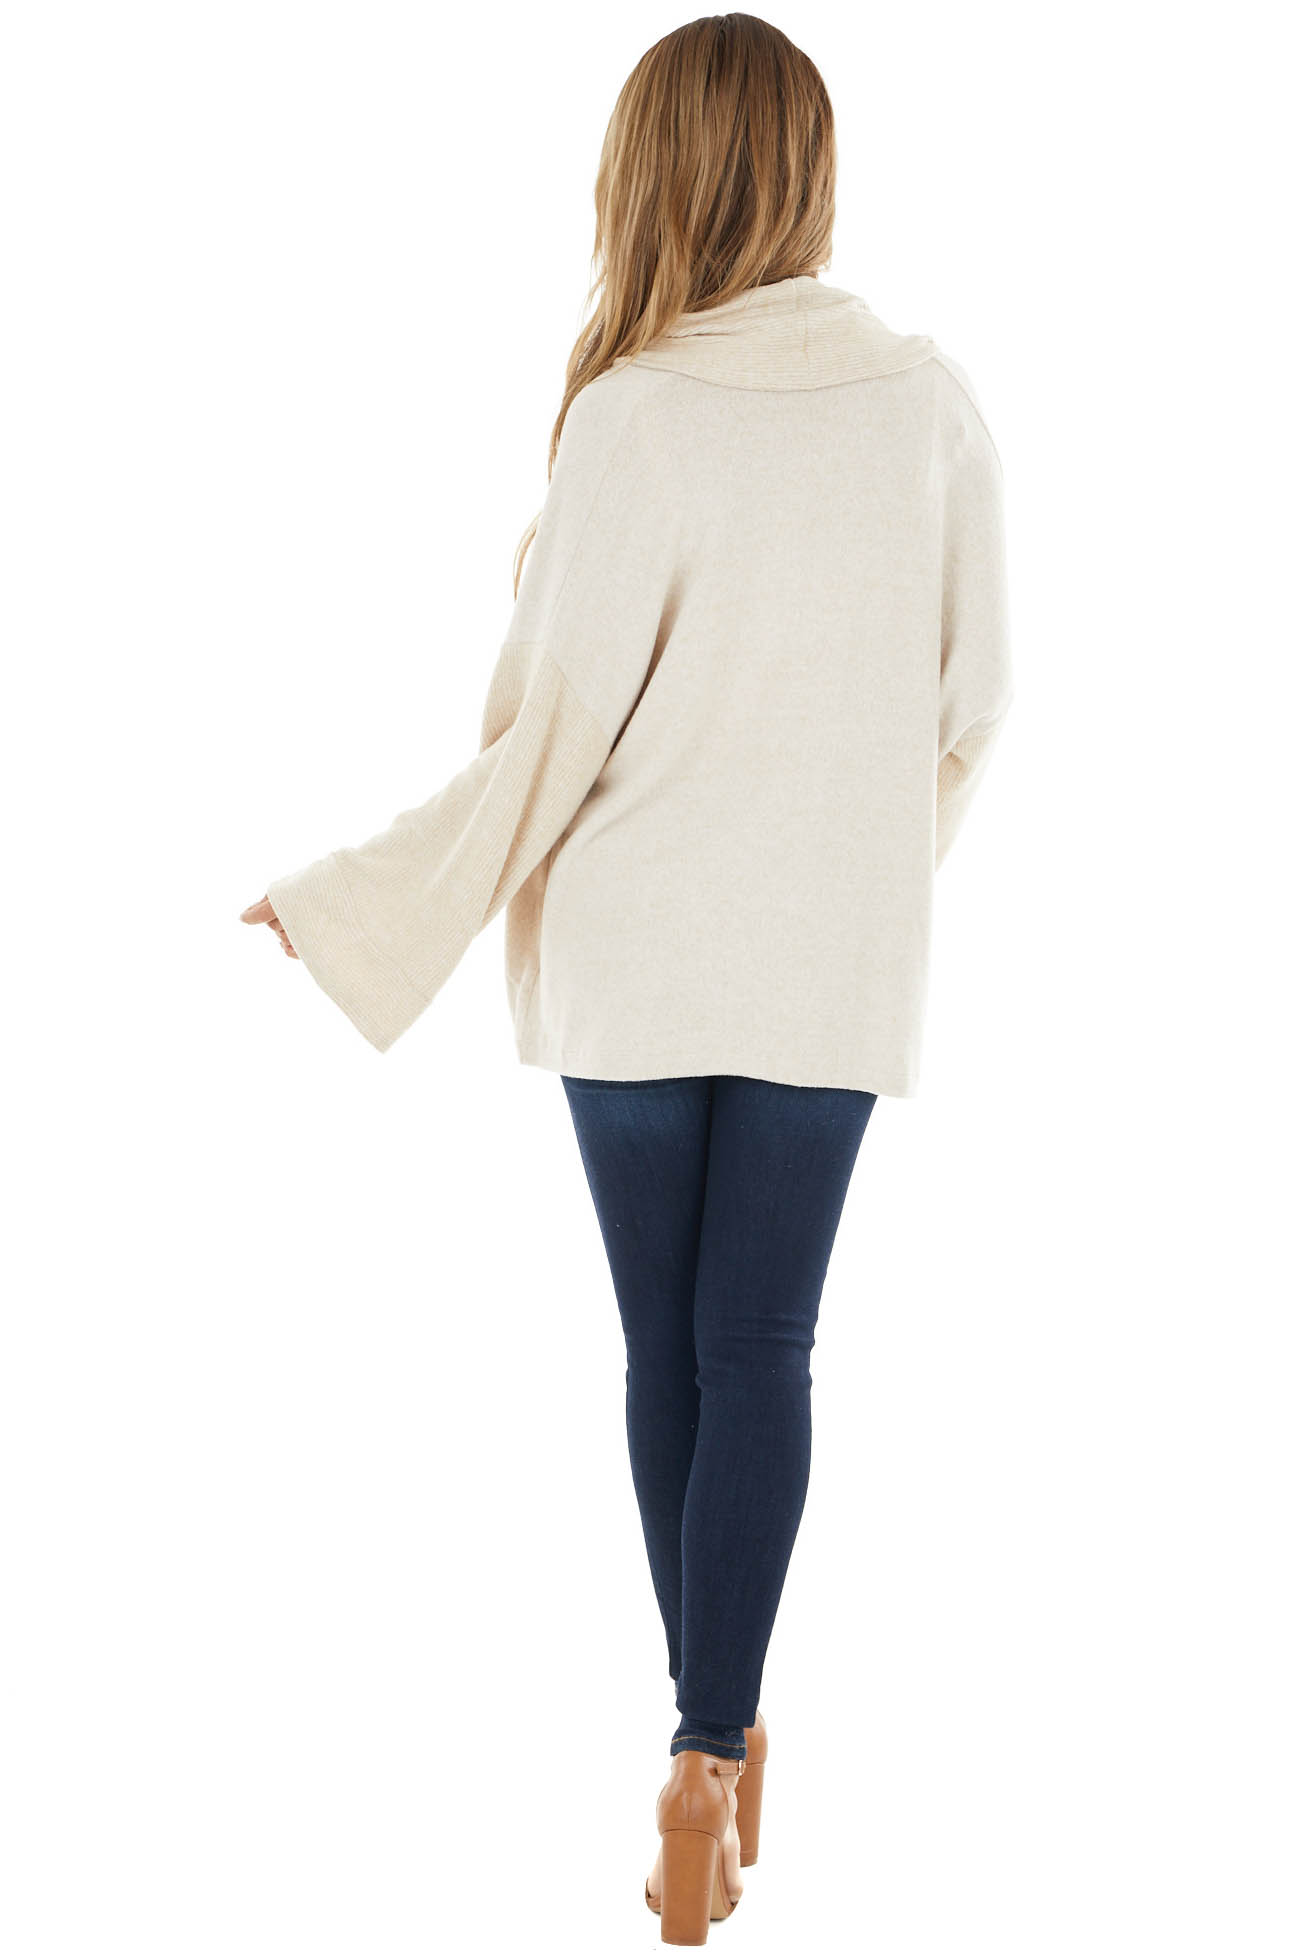 Oatmeal Fuzzy Cardigan with Loose Sleeves and Ribbed Trim